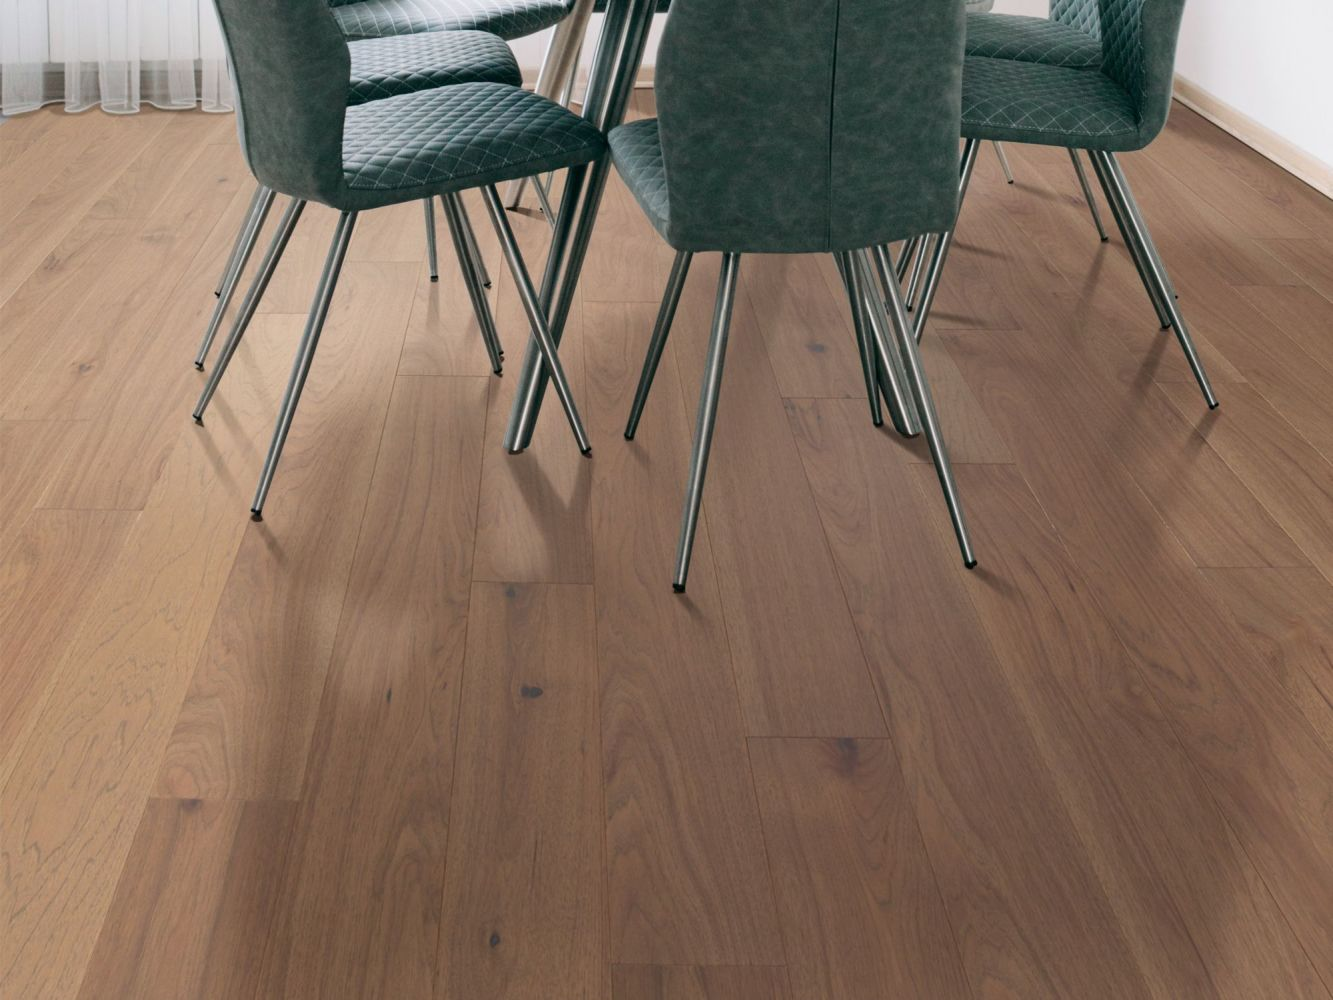 Shaw Floors Home Fn Gold Hardwood Oasis Hickory Quietude 07094_HW715